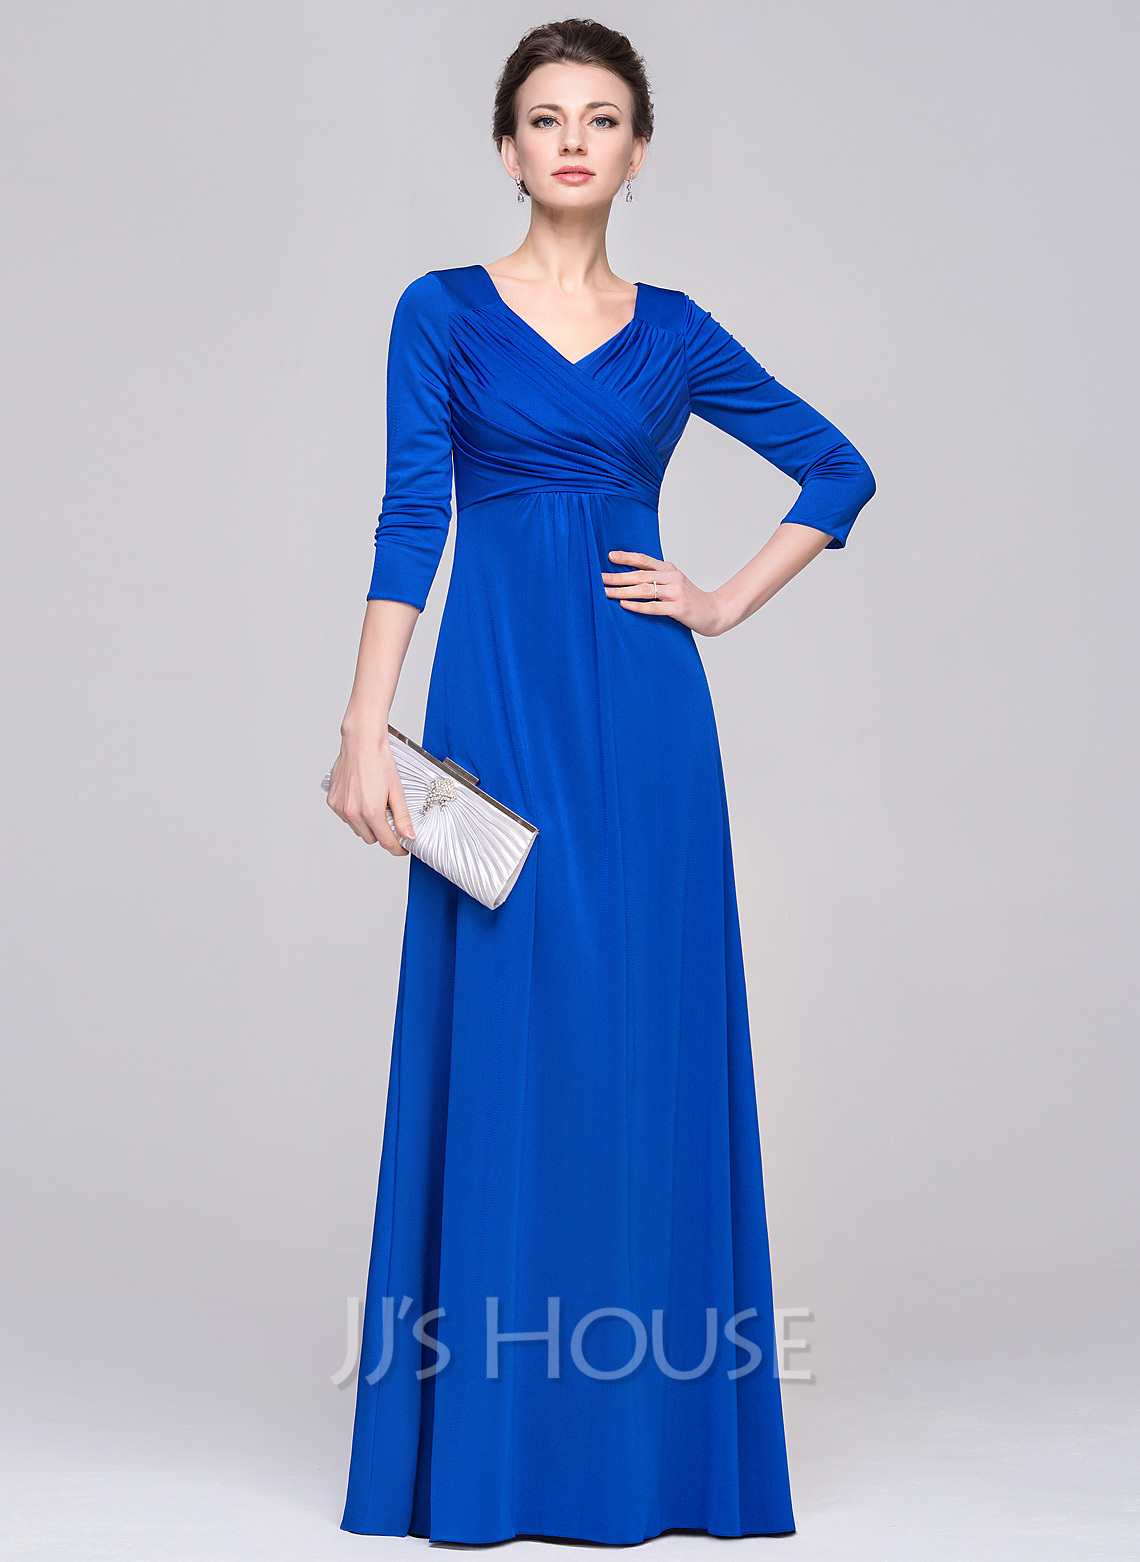 Casual wedding dresses in new jersey bridesmaid dresses for Wedding dresses new jersey